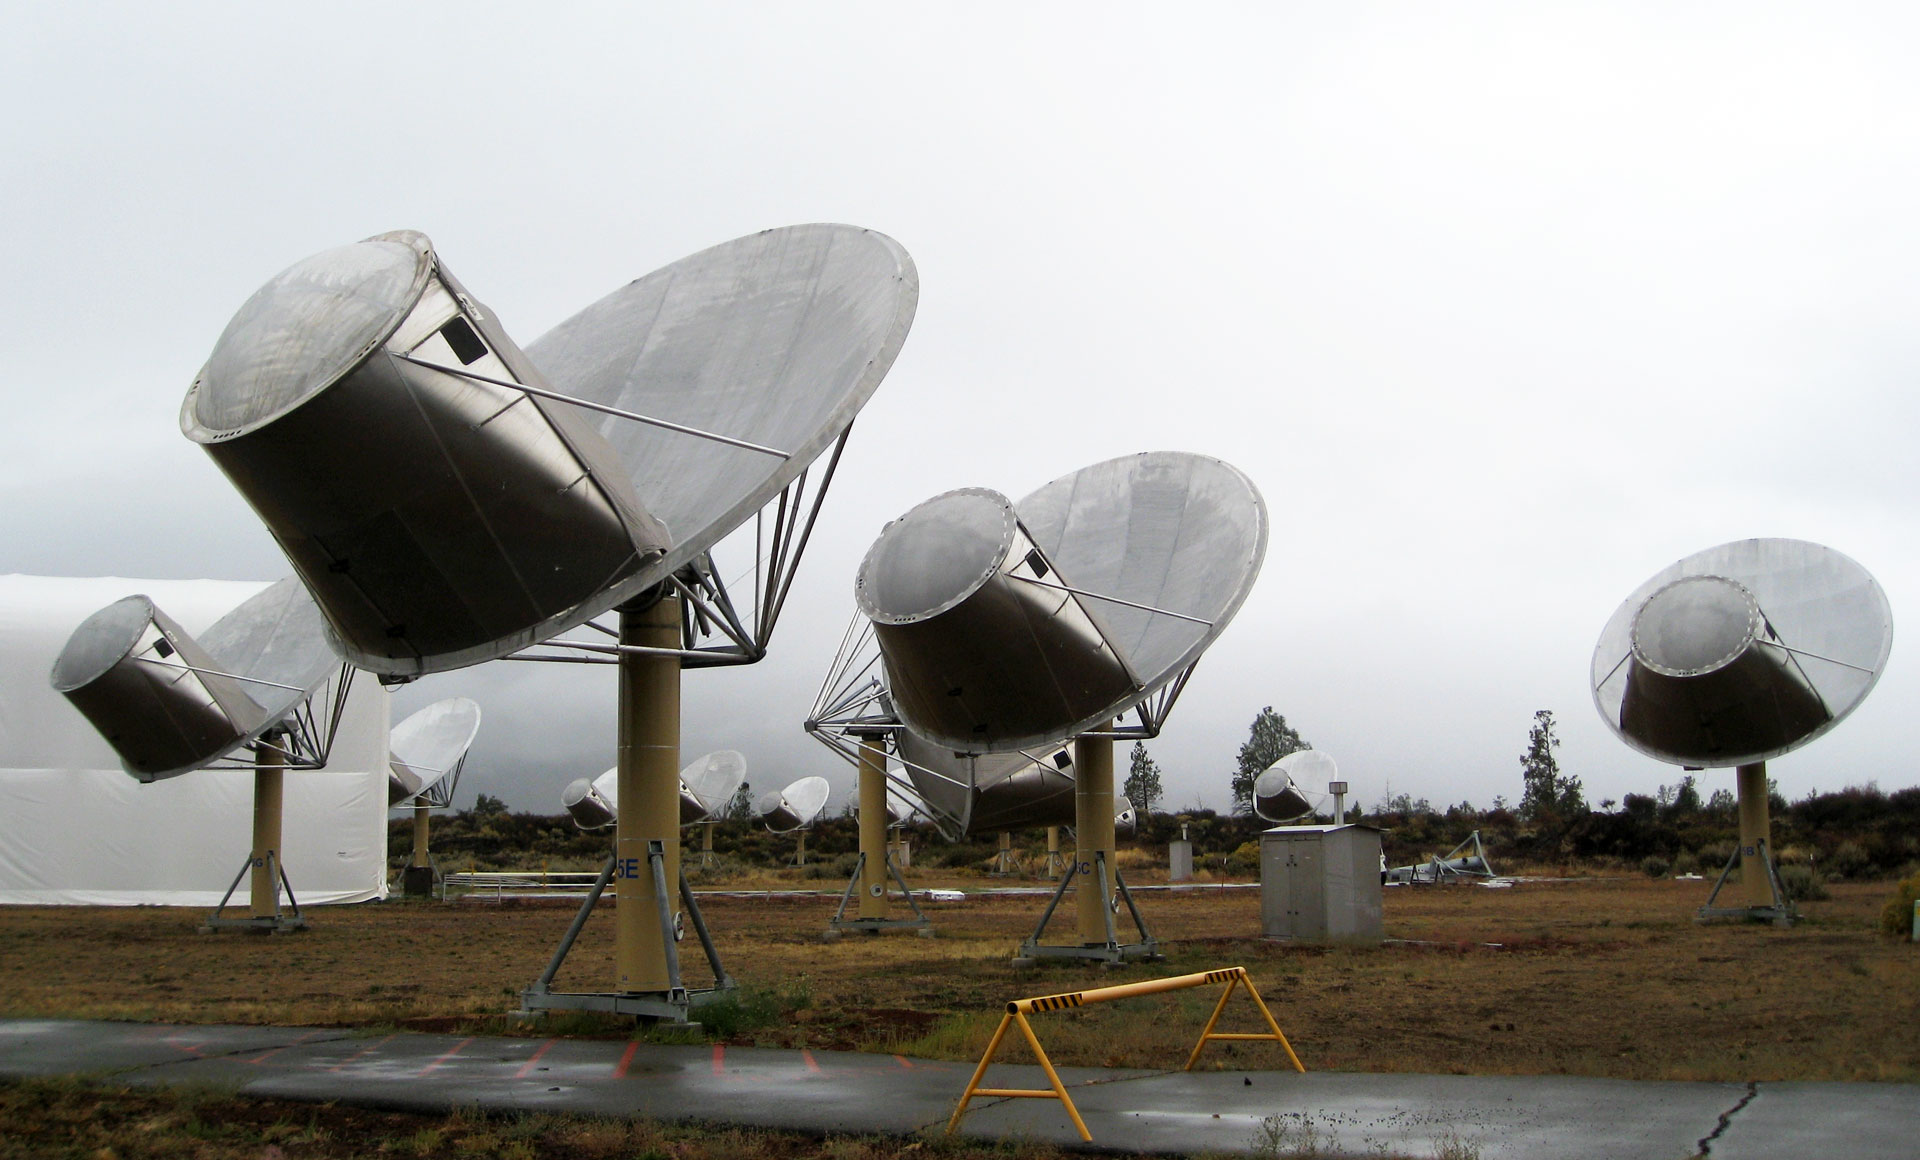 The SETI Institute's Allen Telescope Array in Hat Creek has been turned toward HD 164595 since Sunday evening, looking for a repeat of the signal.